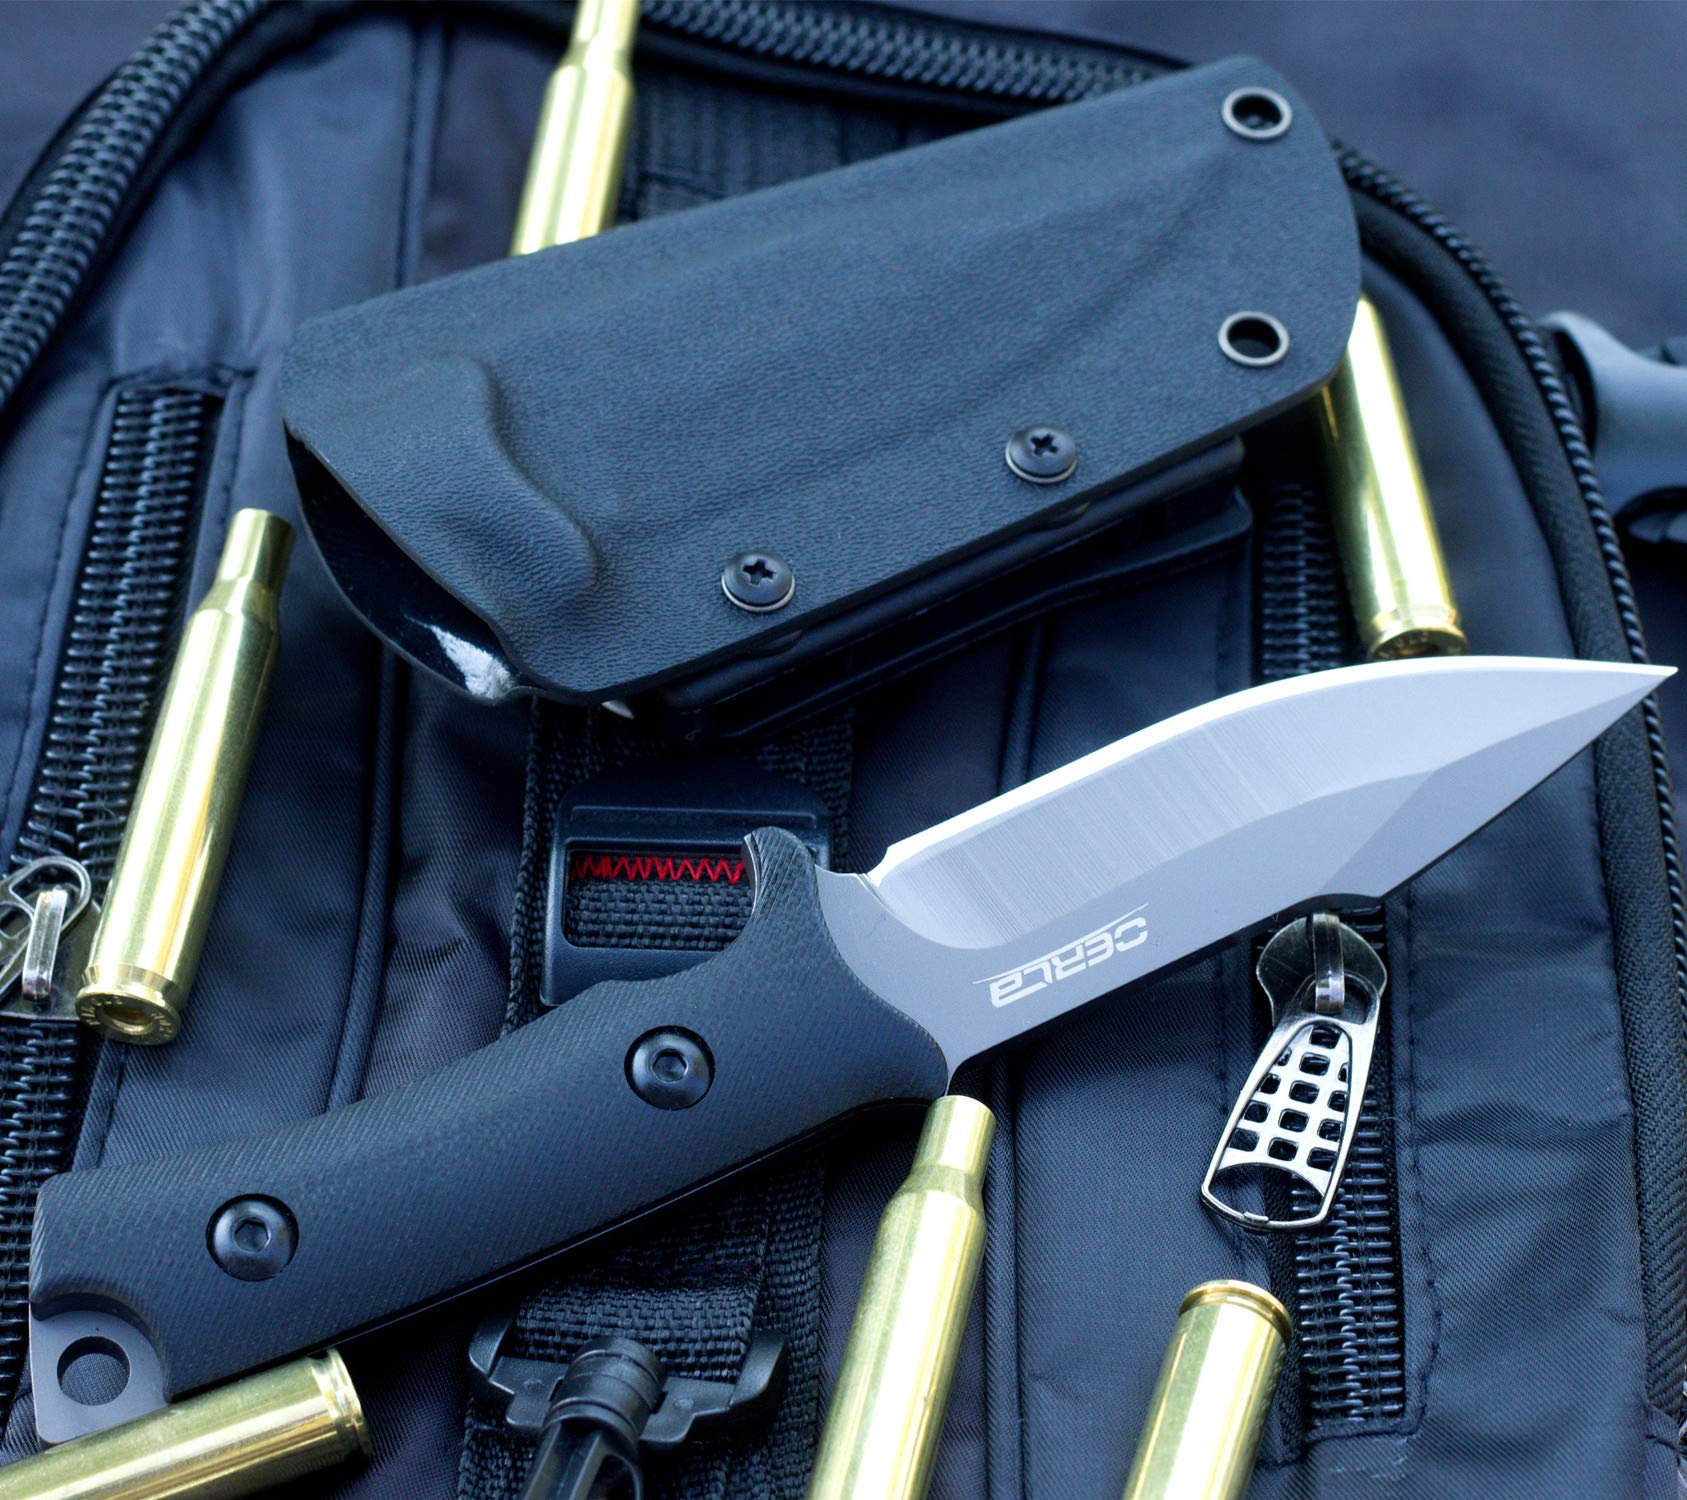 Oerla TAC OLF-1009 Fixed Blade Outdoor Duty Knife 420HC Stainless Steel Field Knife Camping Knife with G10 Handle Waist Clip EDC Kydex Sheath (Black) by Oerla (Image #7)